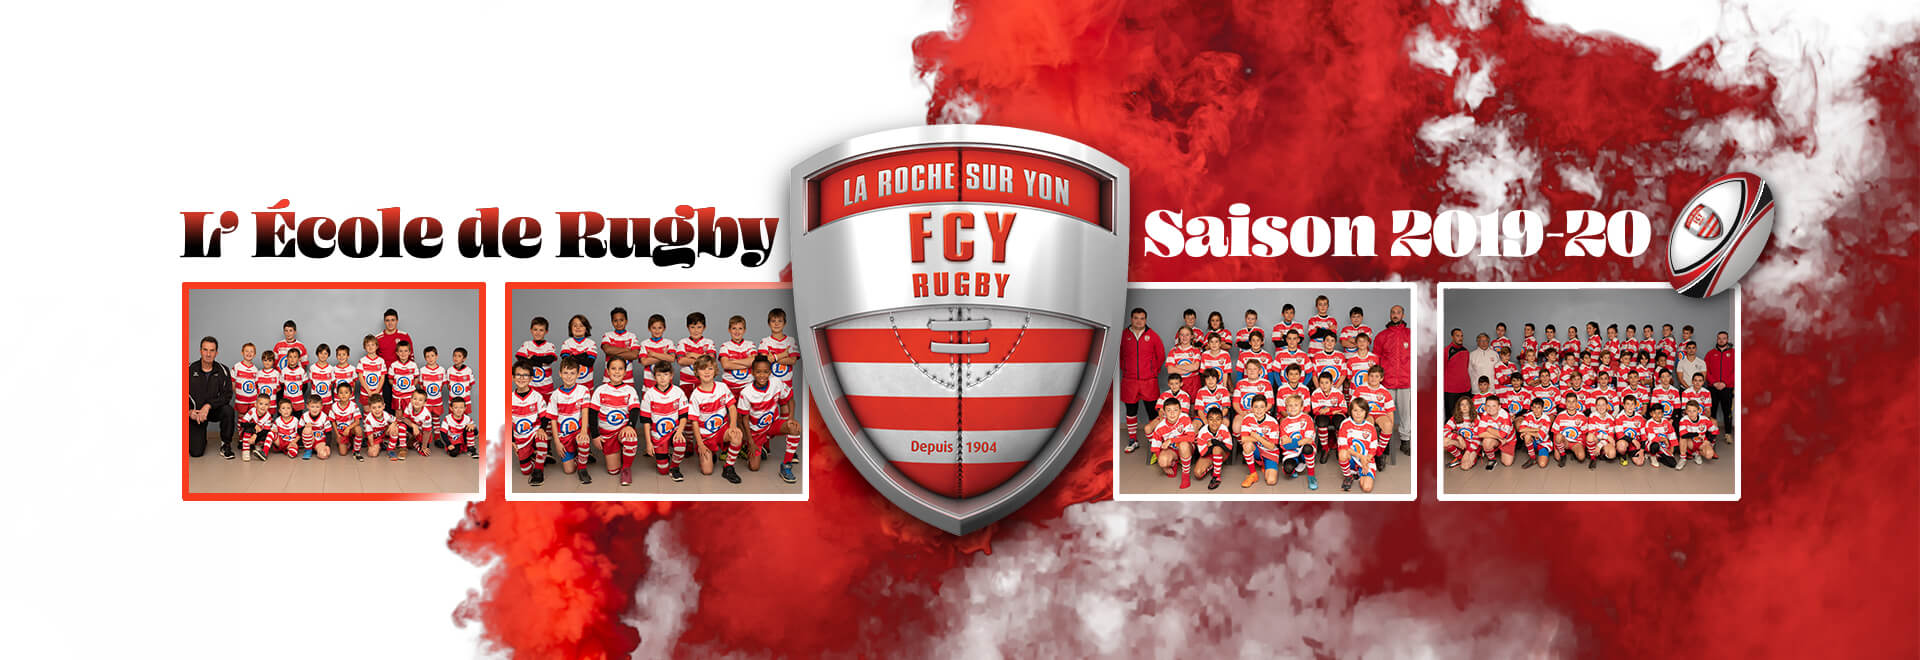 Ecole de Rugby - FCY Rugby